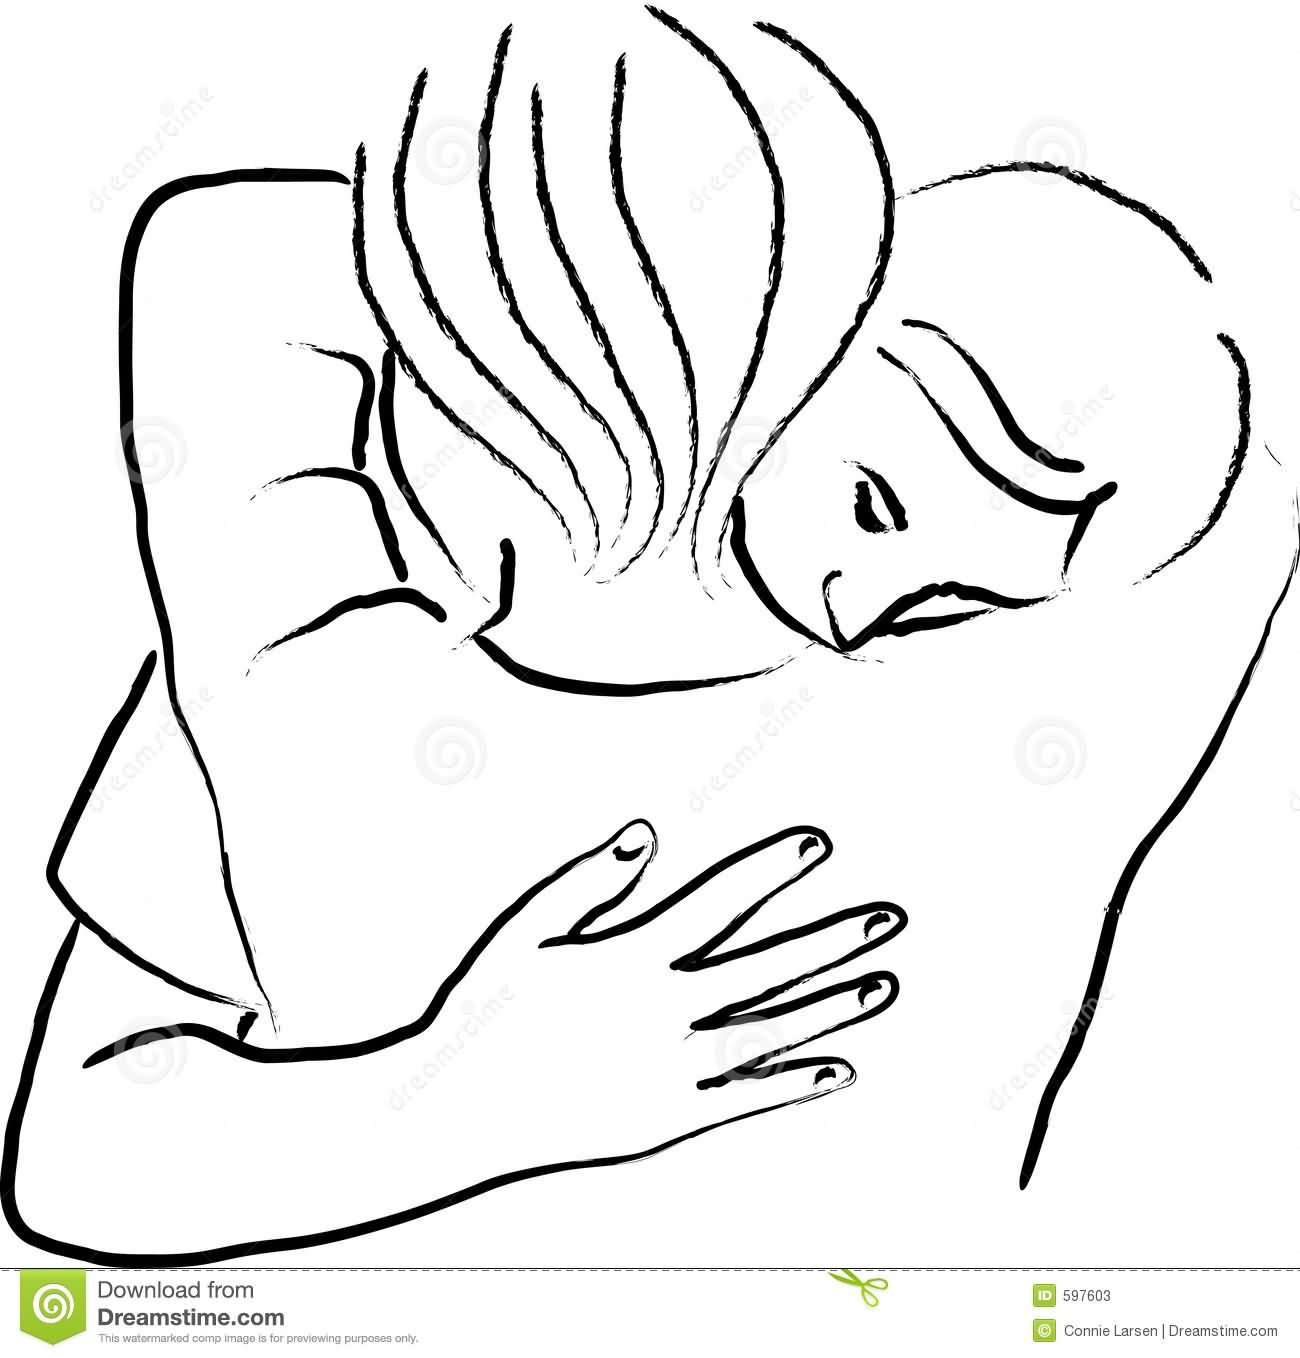 Both Are Consolation Hug Picture.